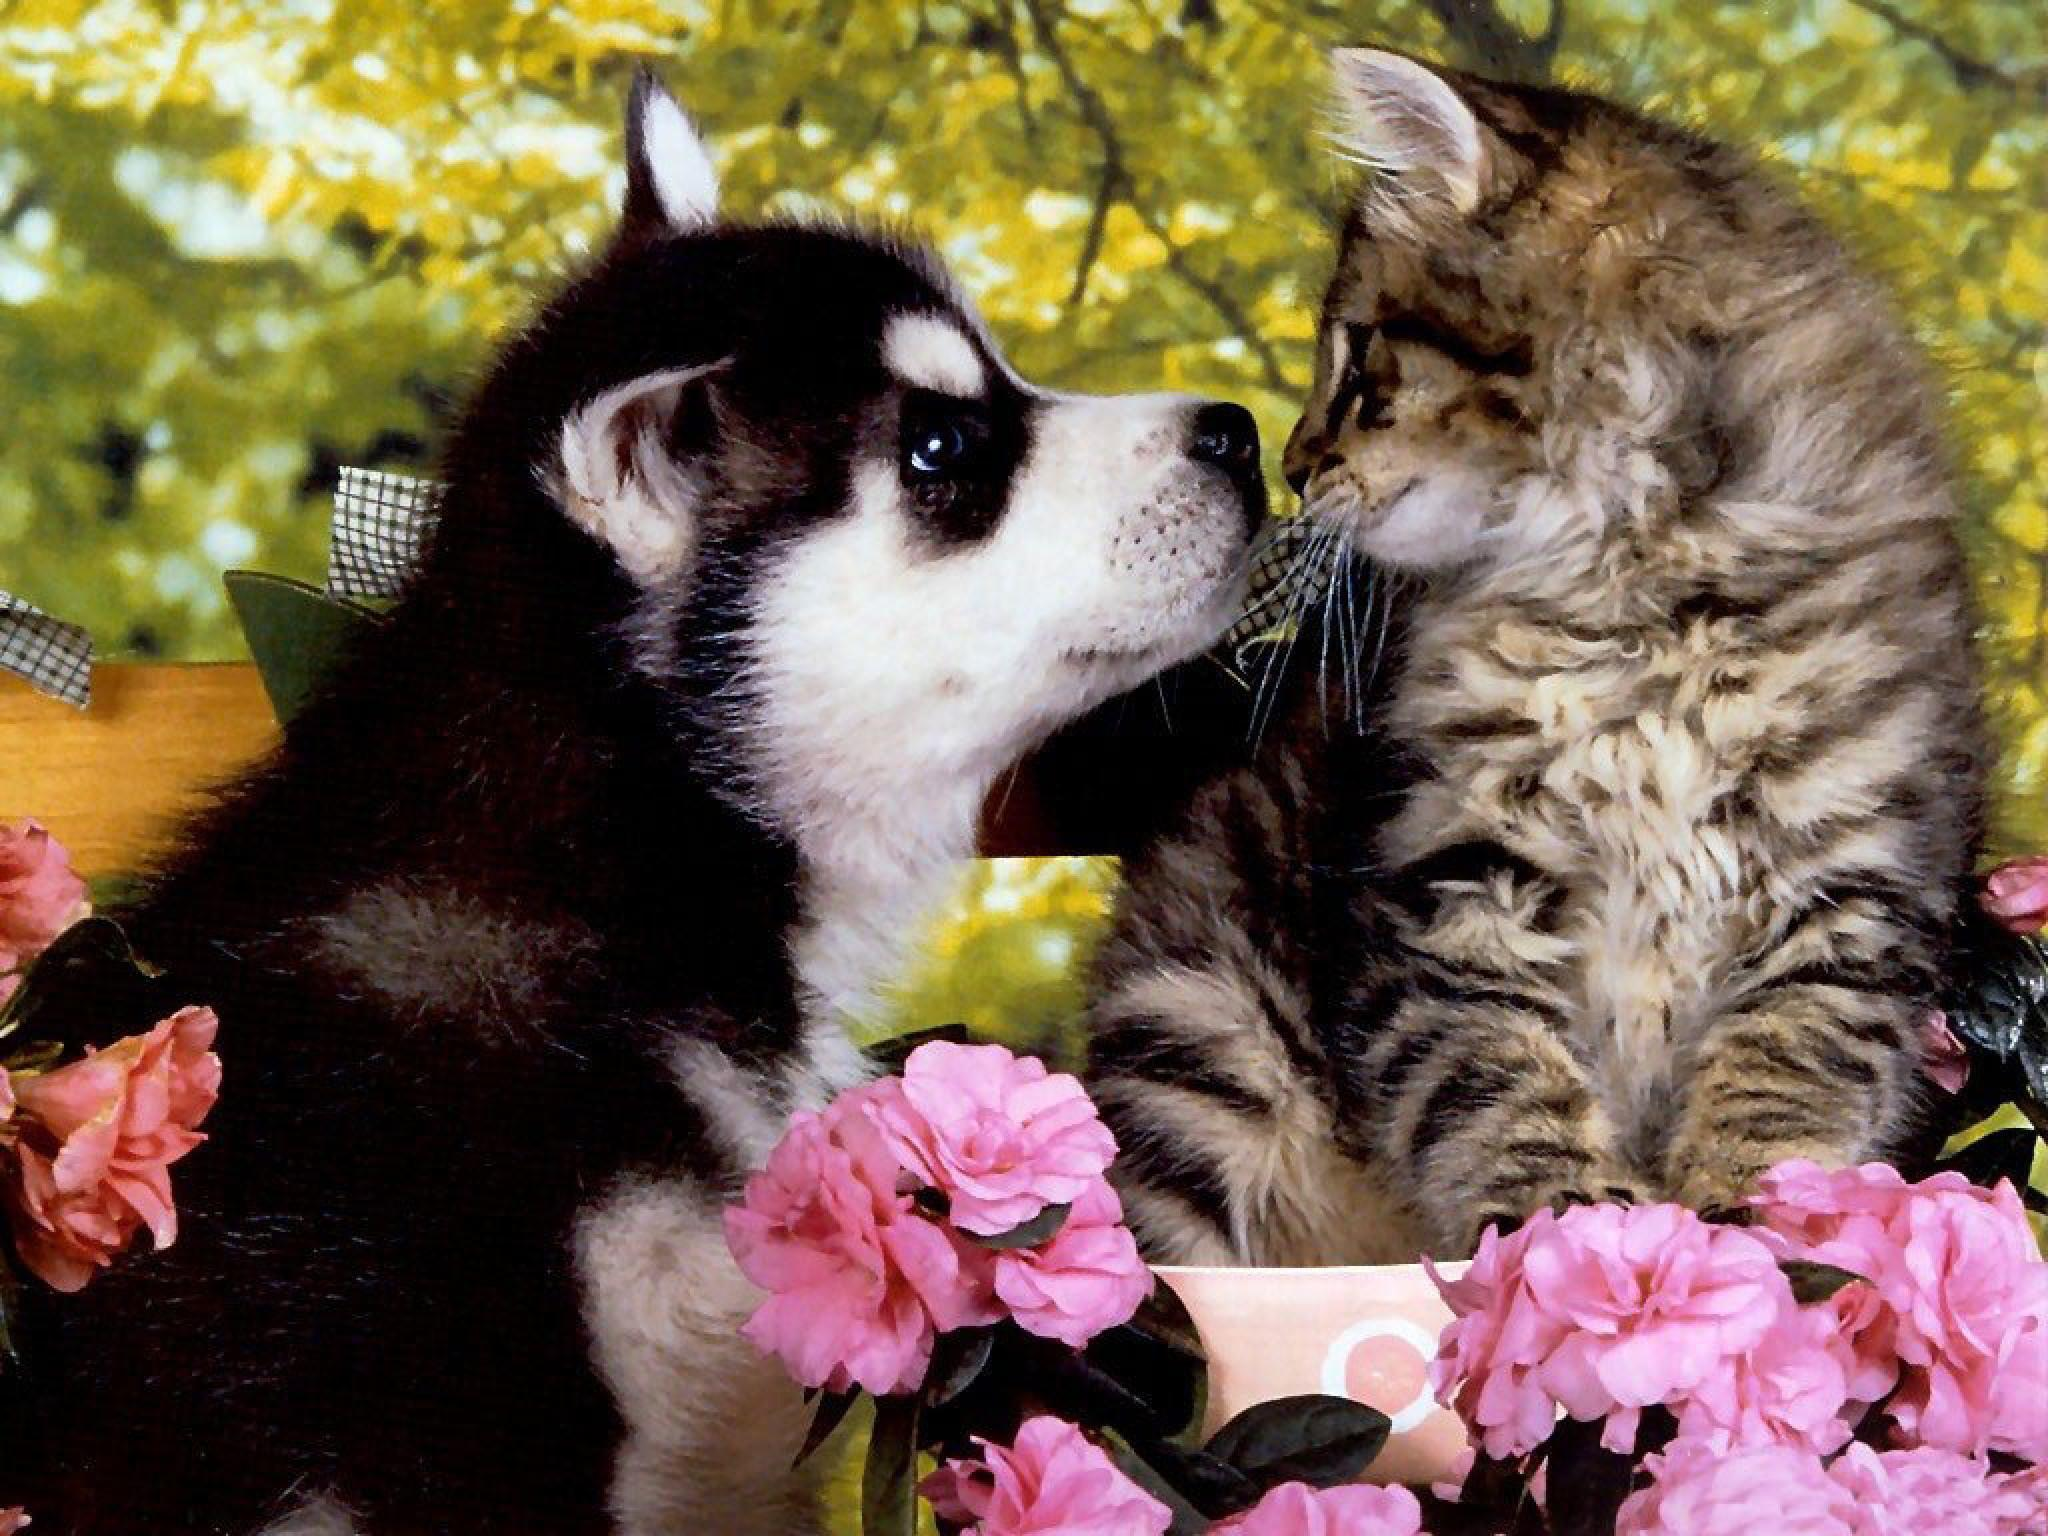 Wallpapers For > Puppy And Kitten Wallpapers Widescreen